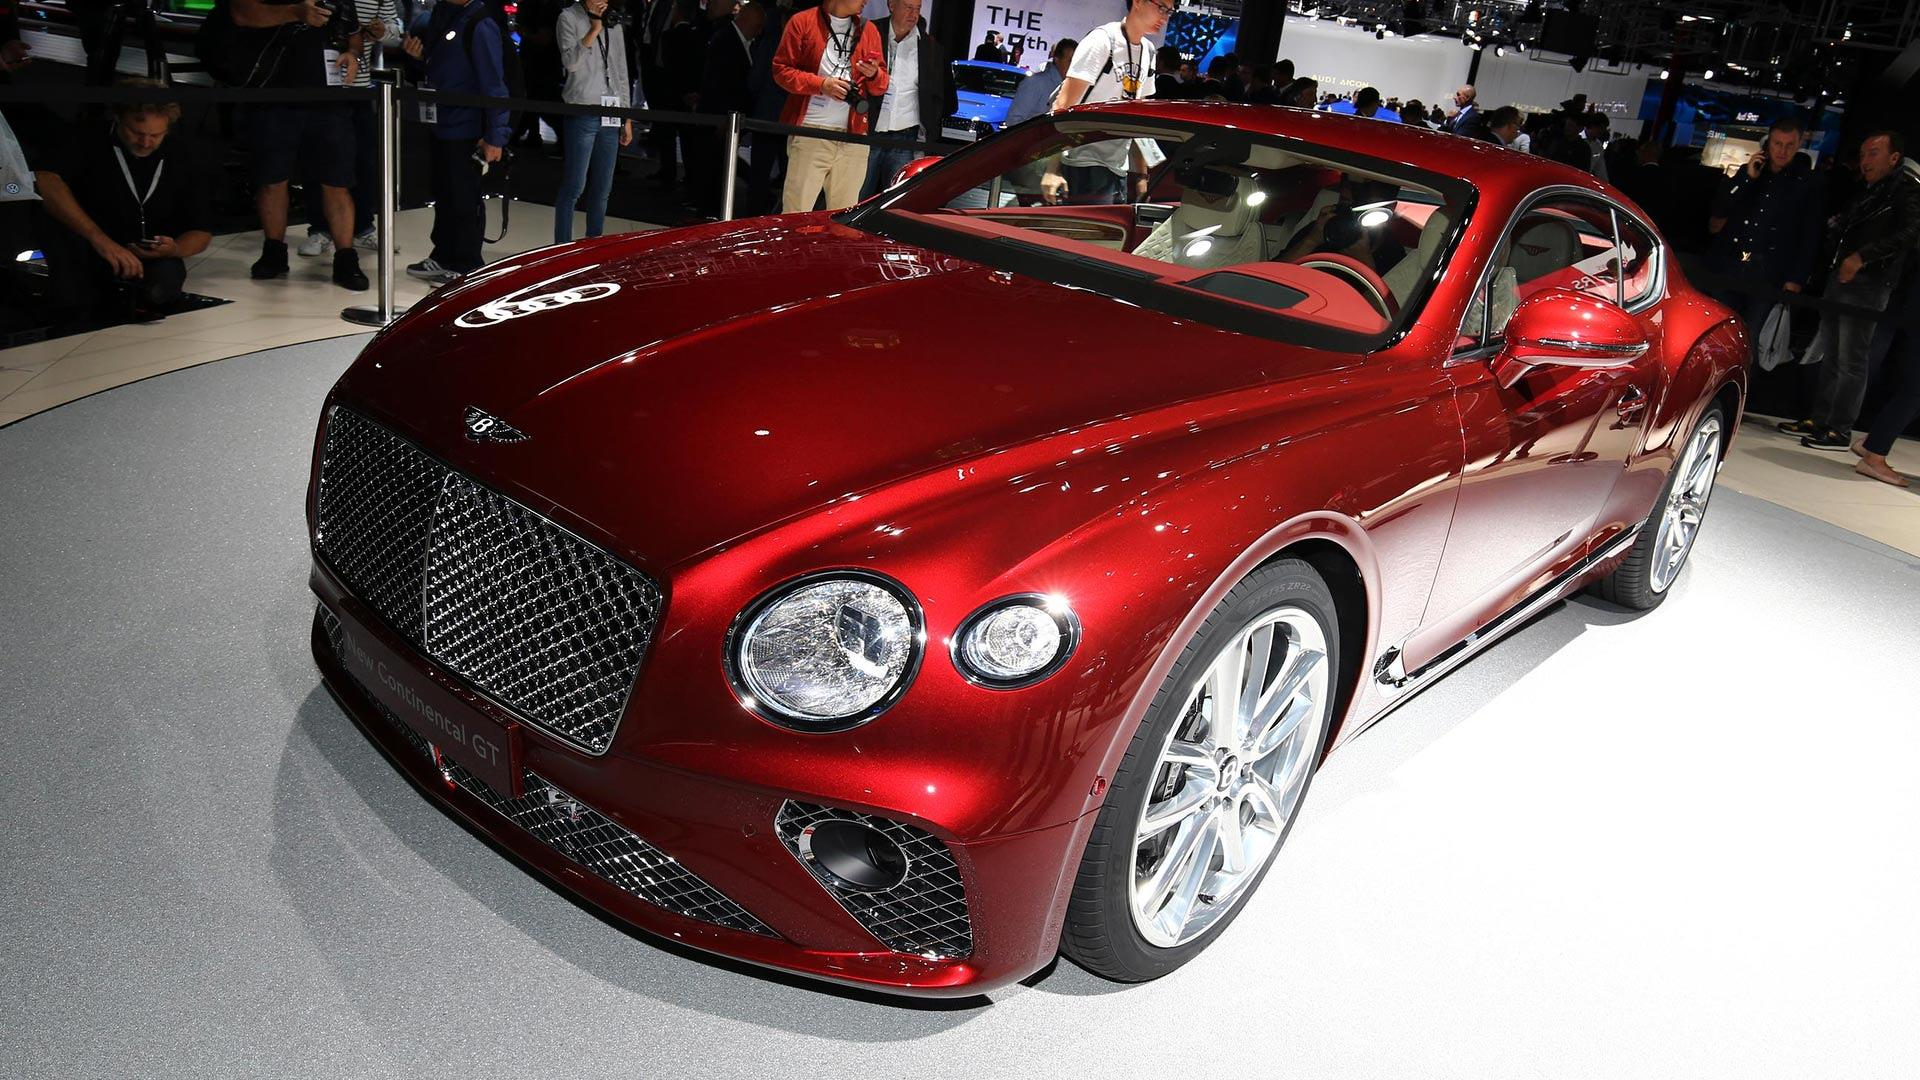 coupe got bentley the story ve selling architectural s see new you evolution of to digest best